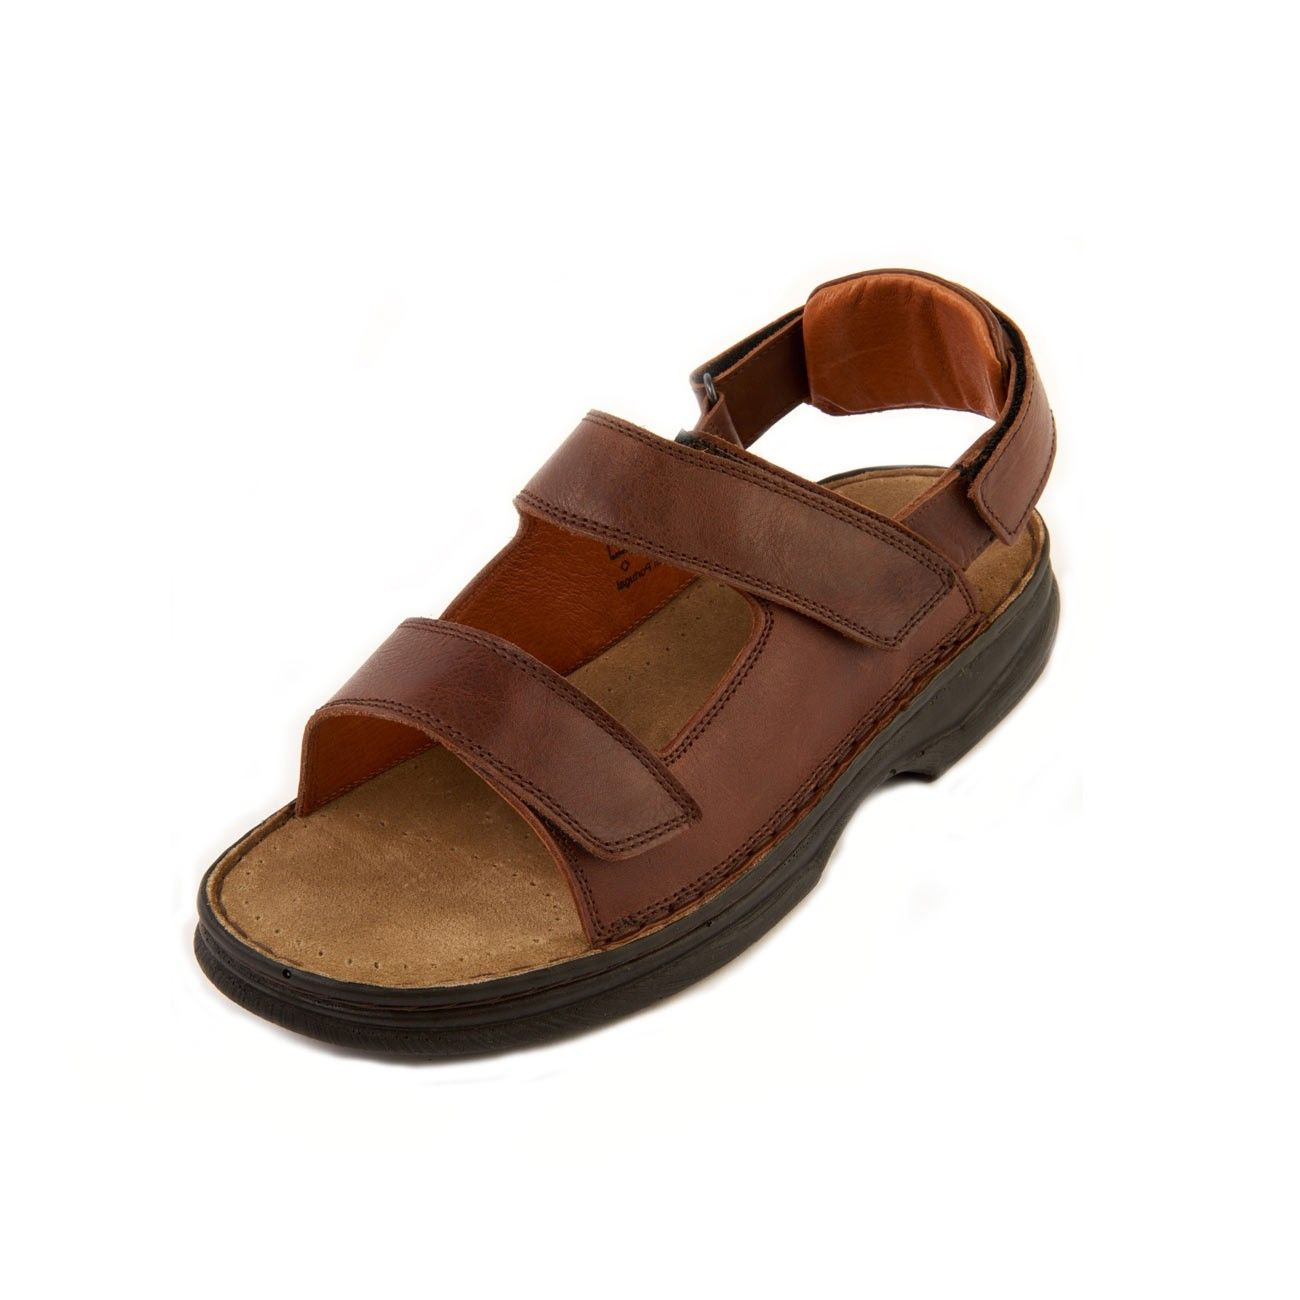 Nick Mens Wide Fitting Sandal offers a durable sole and cushioned footbed 0daf7687b